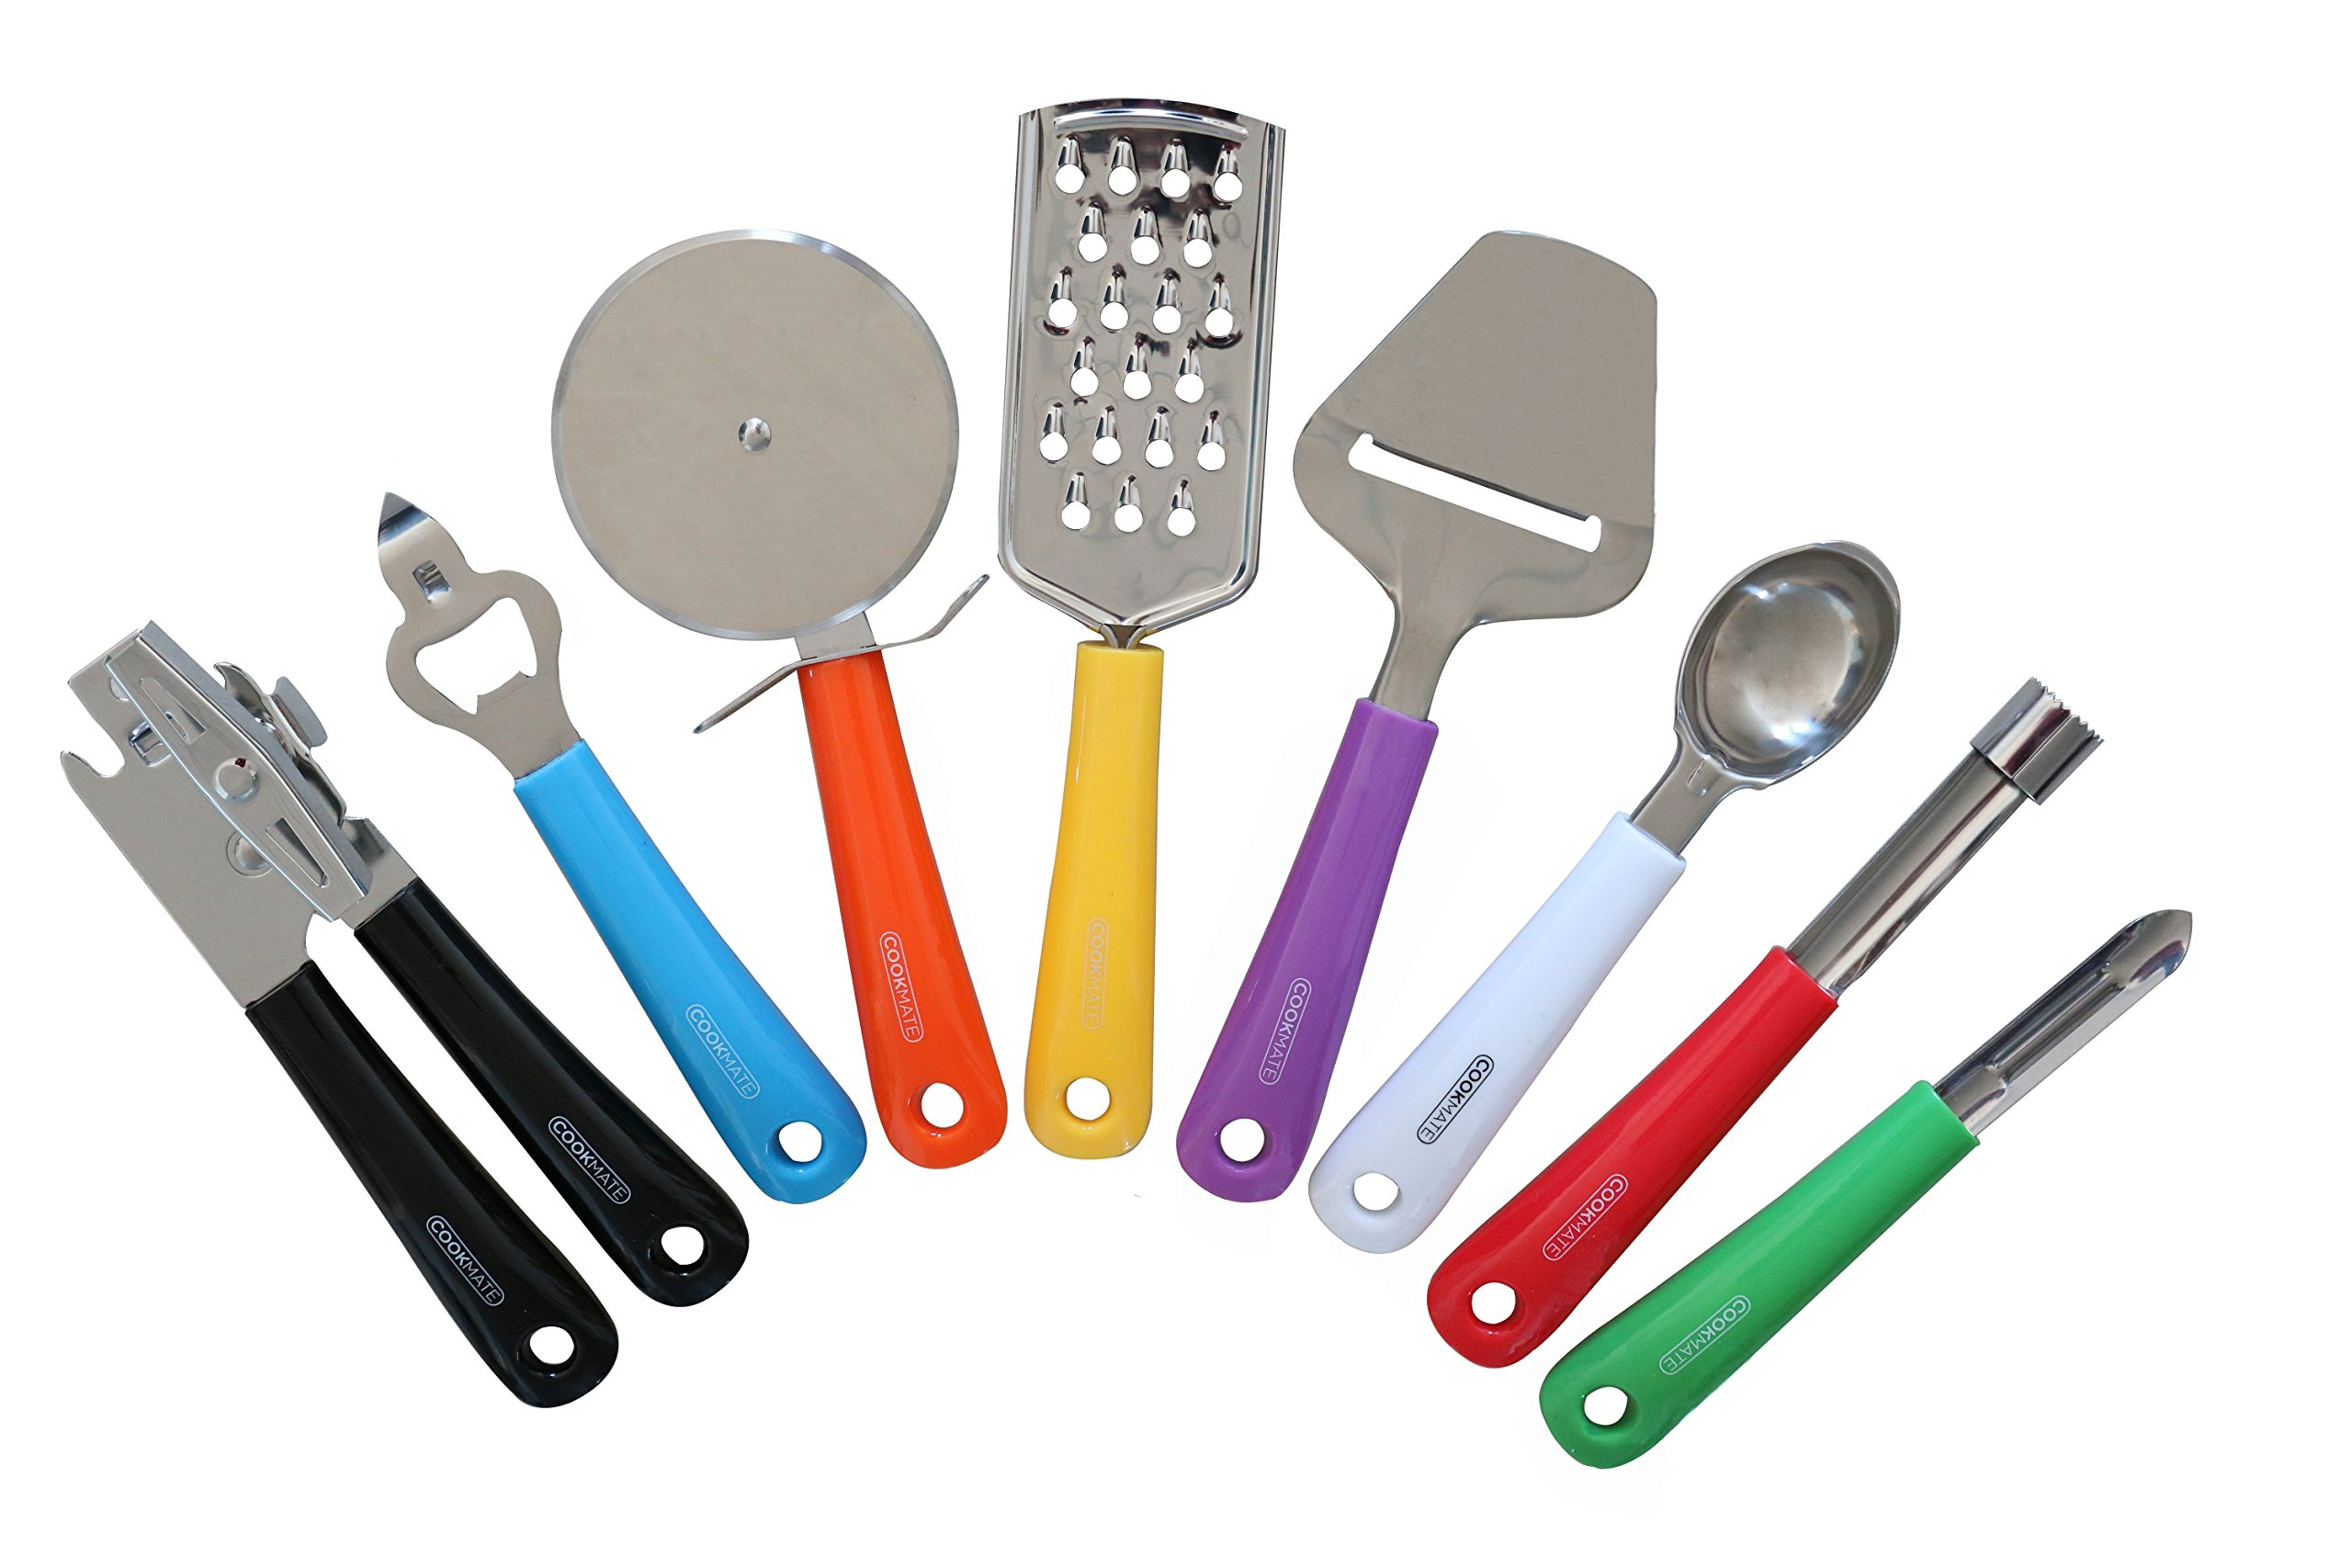 Unity-Frankford 8 Piece Kitchen Gadgets - Stainless Steel - Colorful Handles - BPA Free